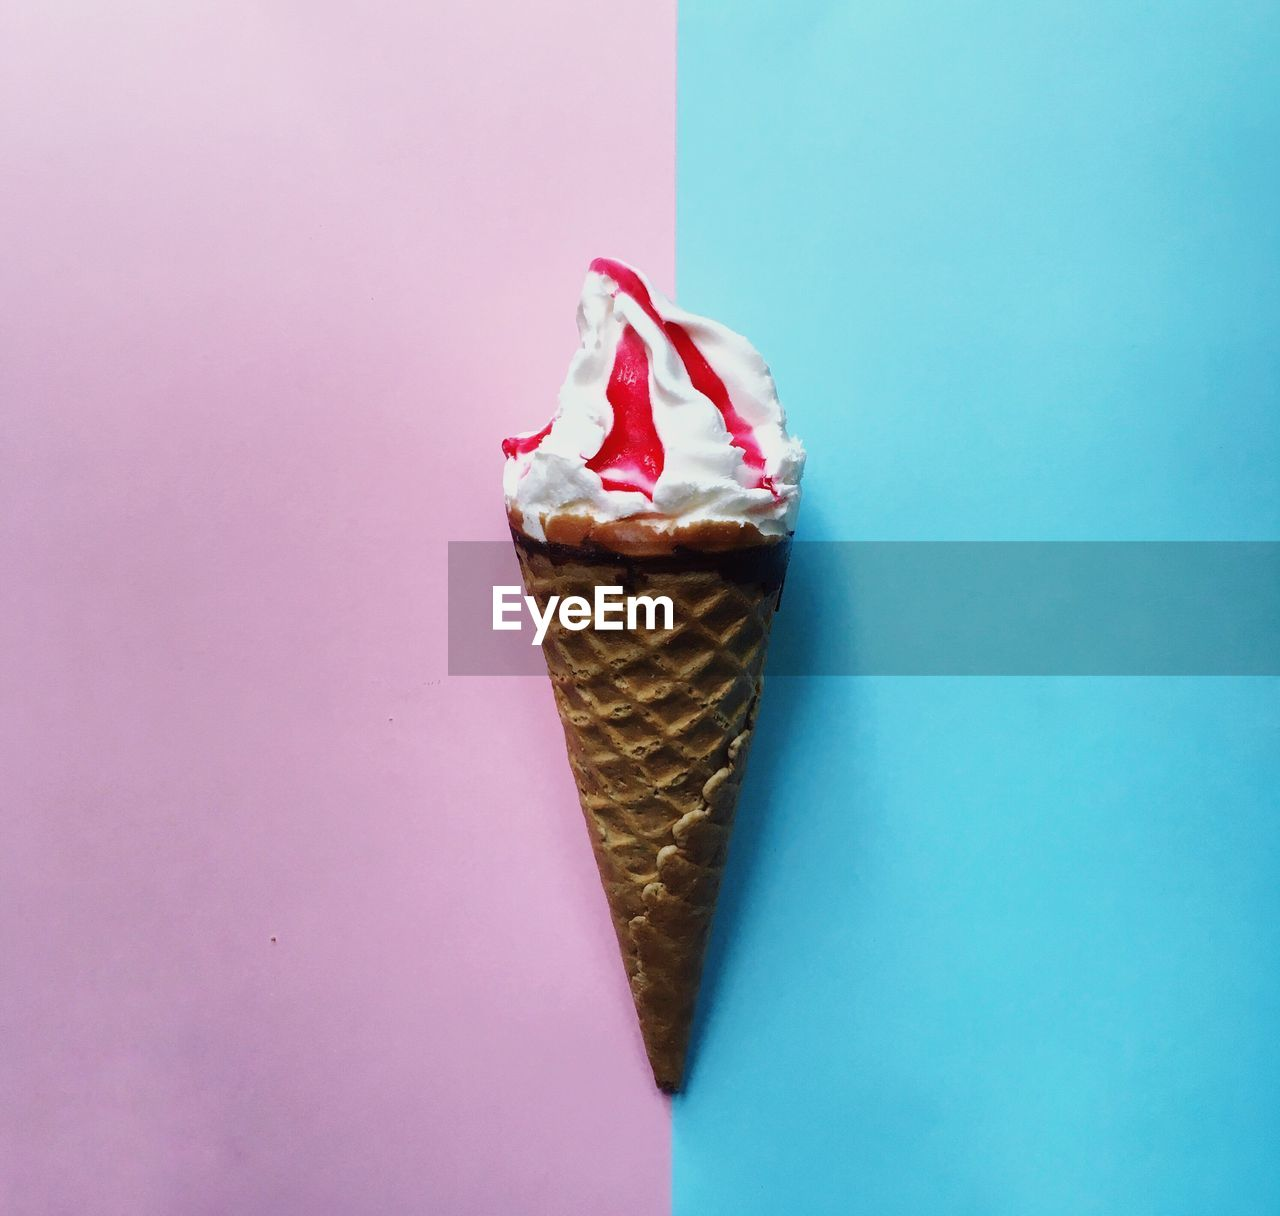 Close-up of ice cream cone on colored background